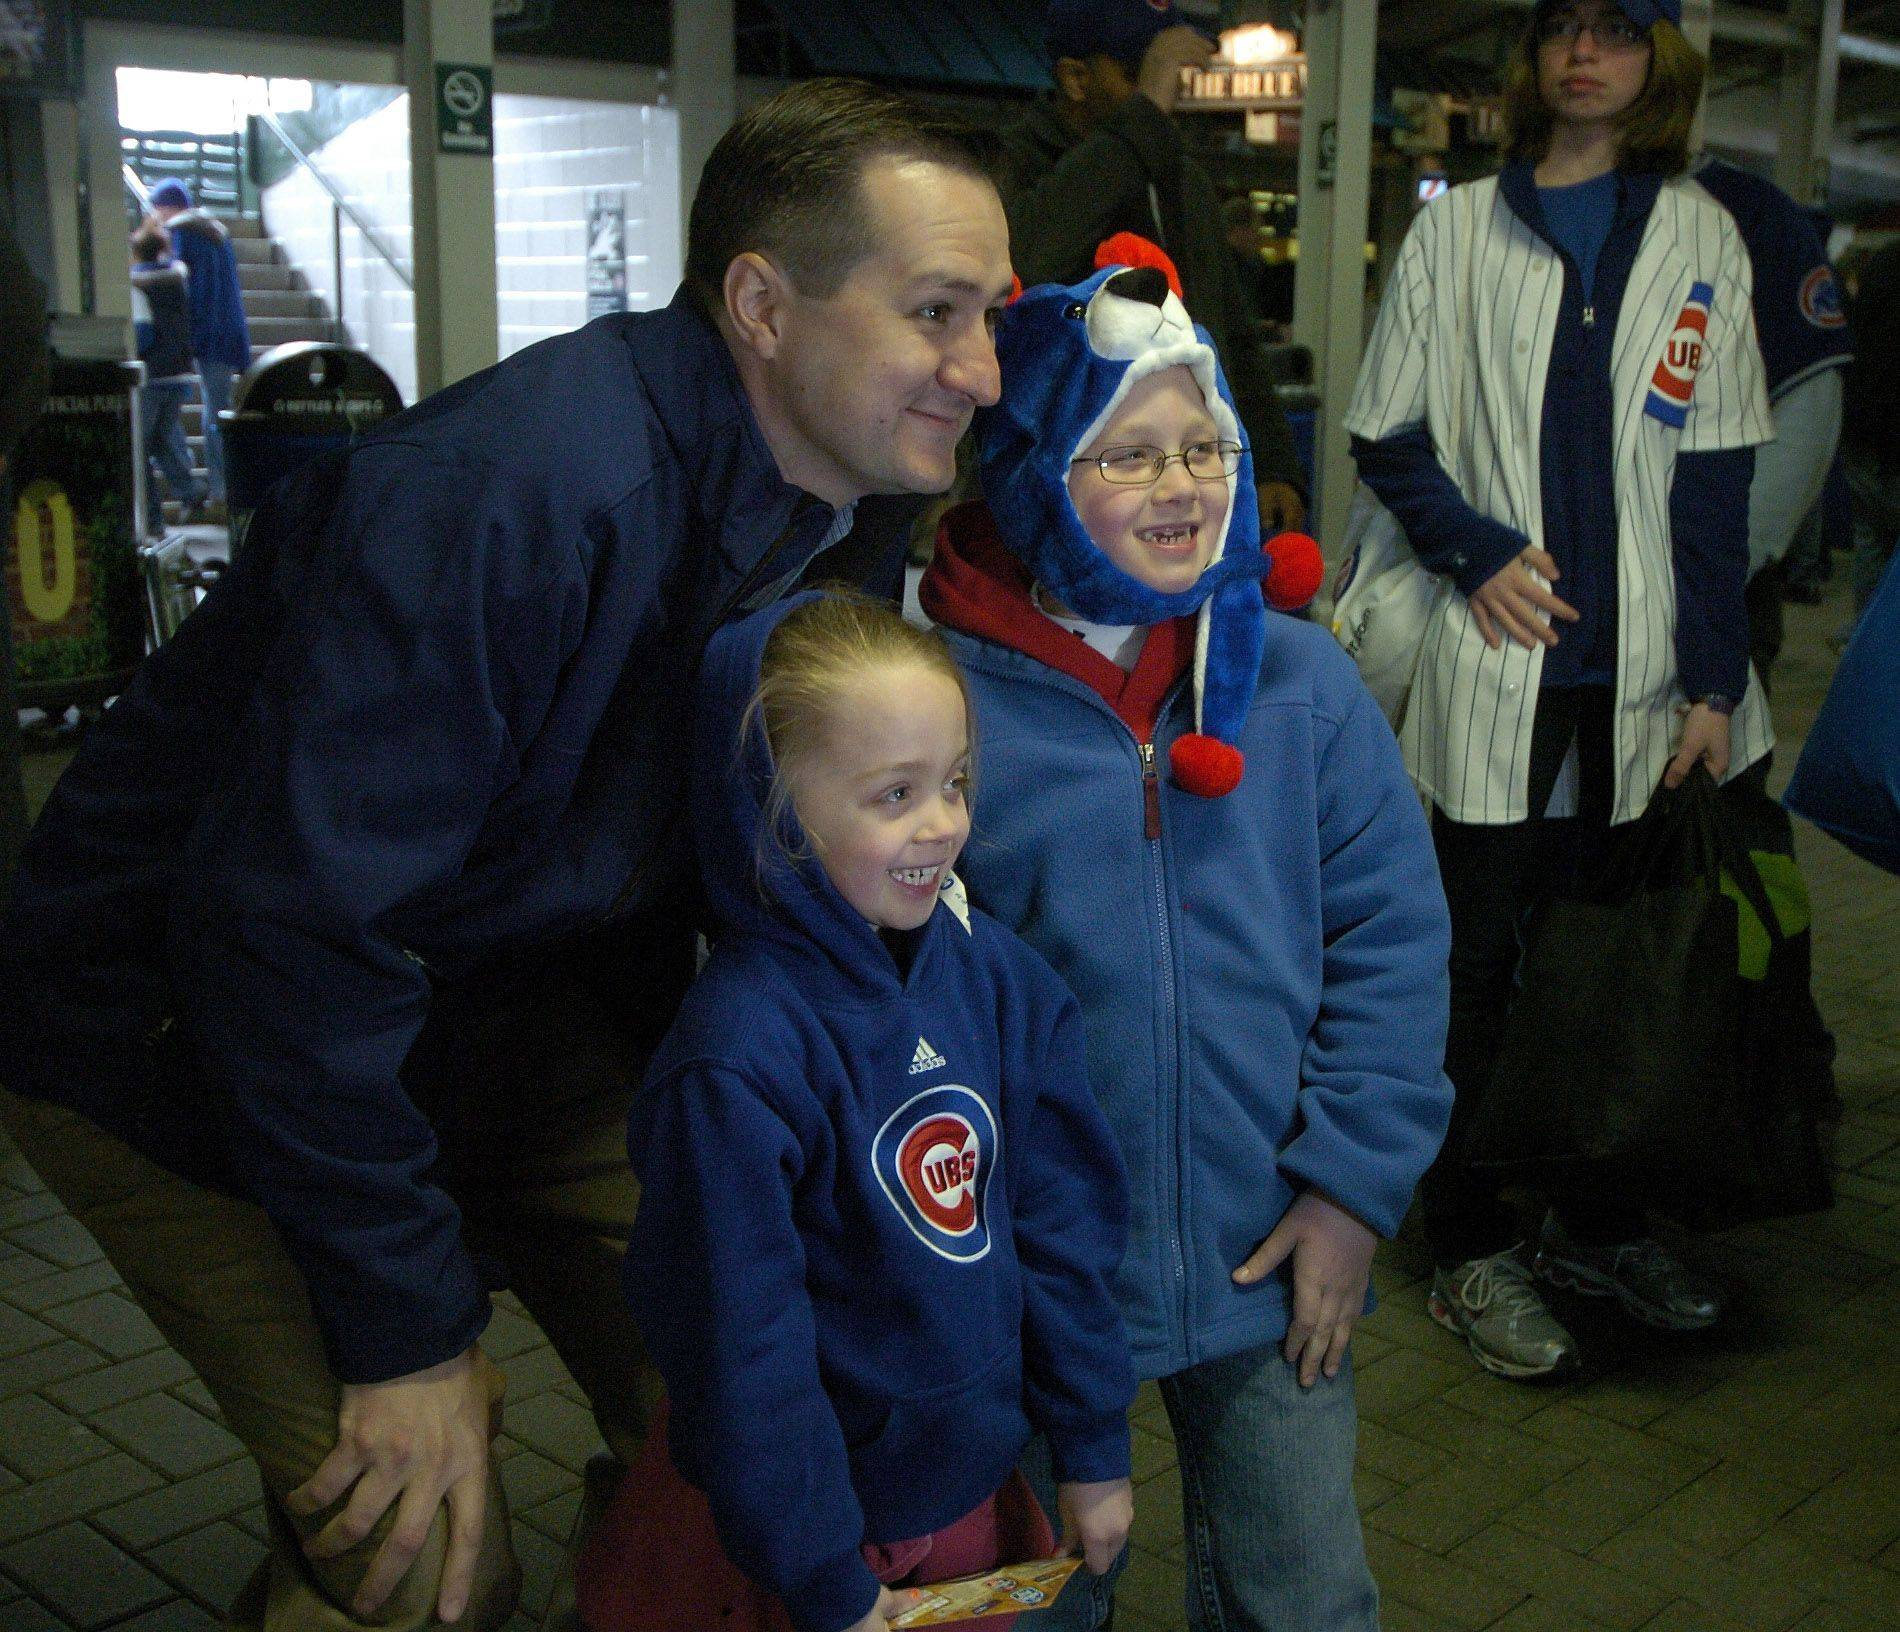 Ciara, 6, and Casey, 9, Mahan of Elburn stop for a photo of themselves with Chicago Cubs Chairman Tom Ricketts.